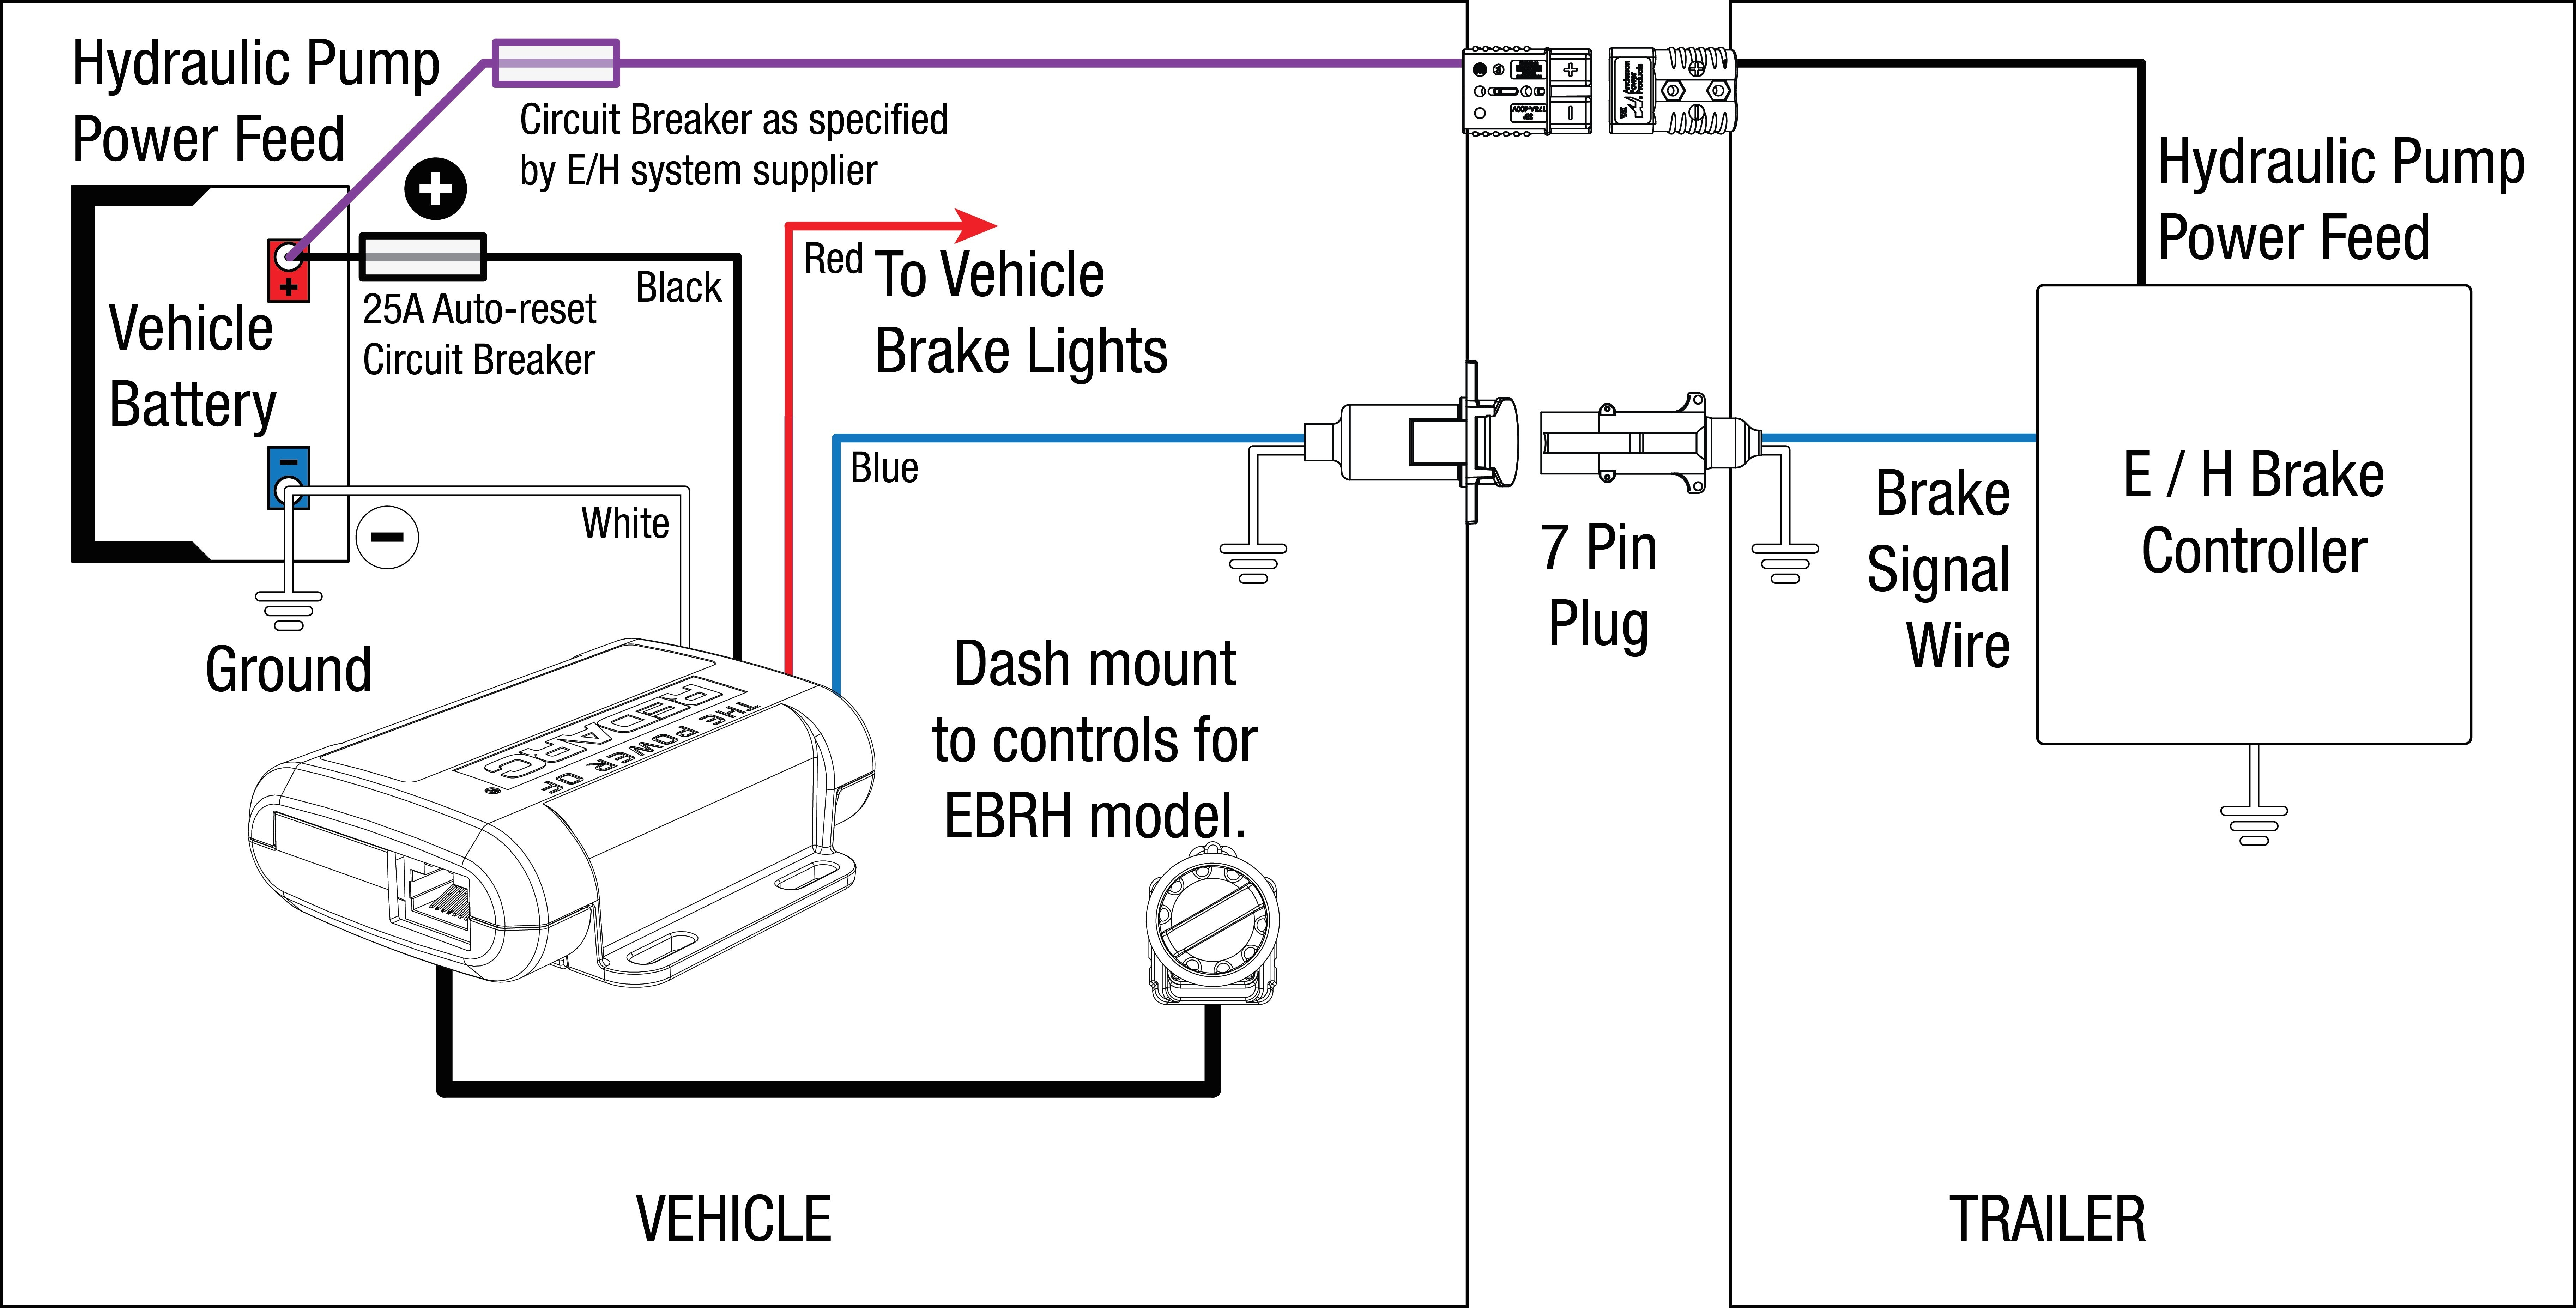 Brake Force Trailer Brake Controller Wiring Diagram | Wiring Diagram - Prodigy Brake Controller Wiring Diagram